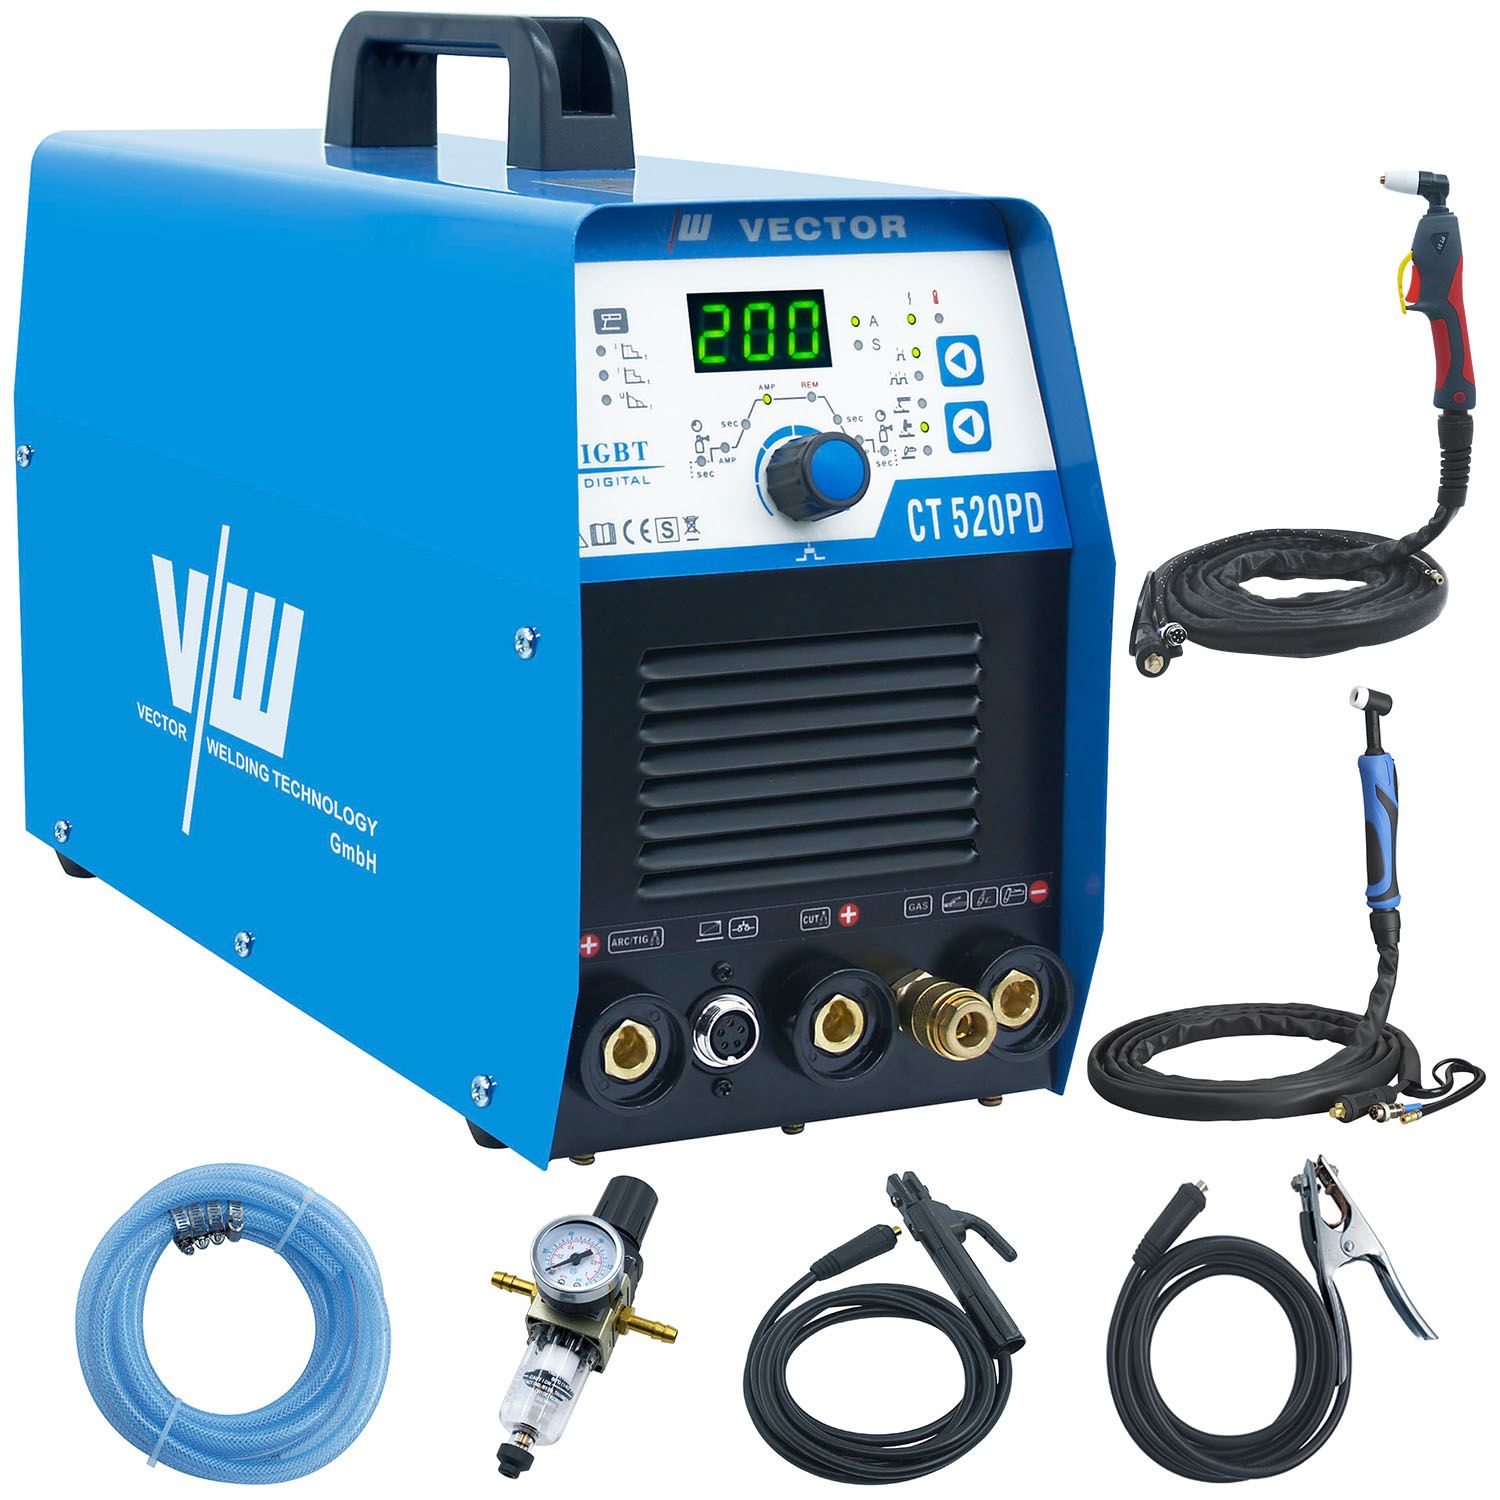 Welding equipment and plasma cutter CT520PD